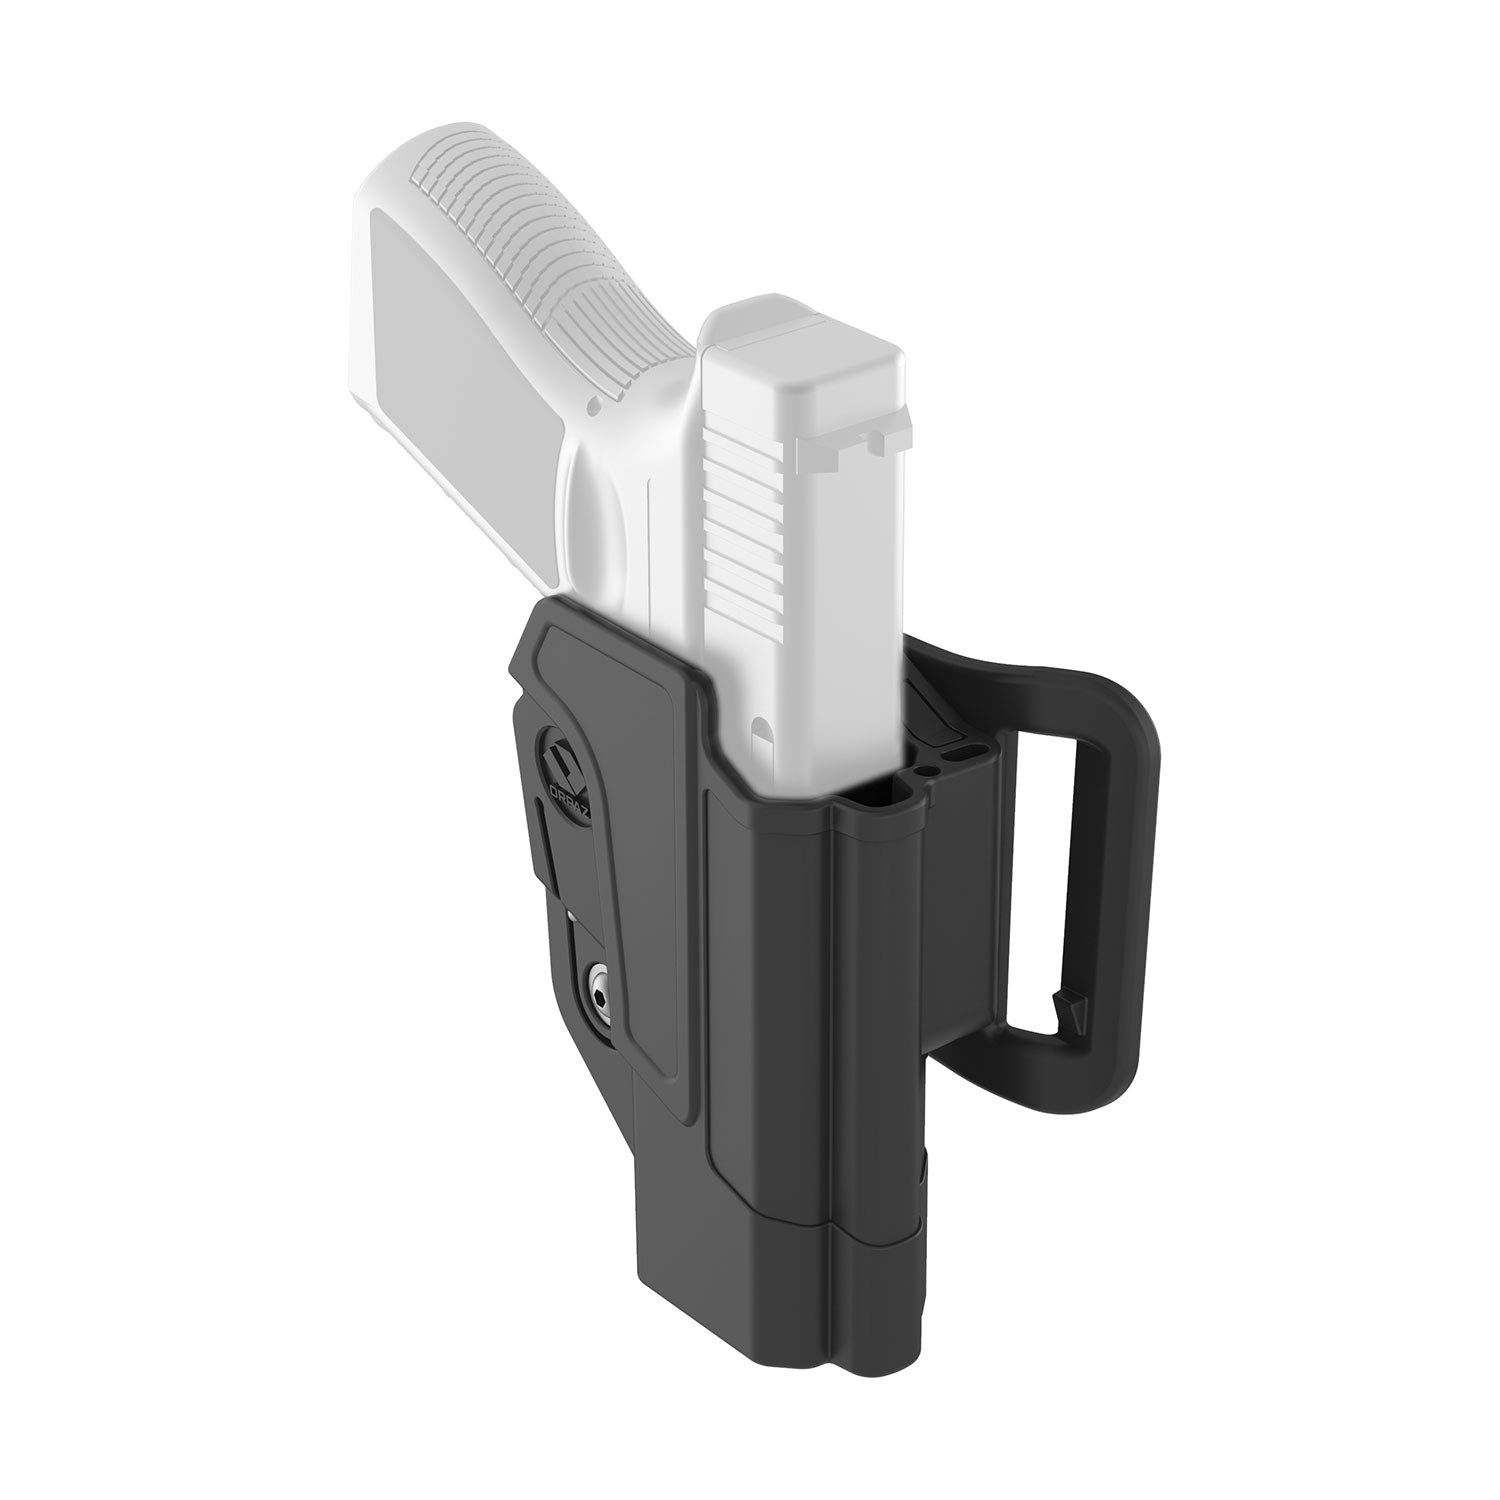 Orpaz H&K USP Holster Fits H&K USP 45, H&K USP 9mm and H&K USP 45 (Full Size Only)